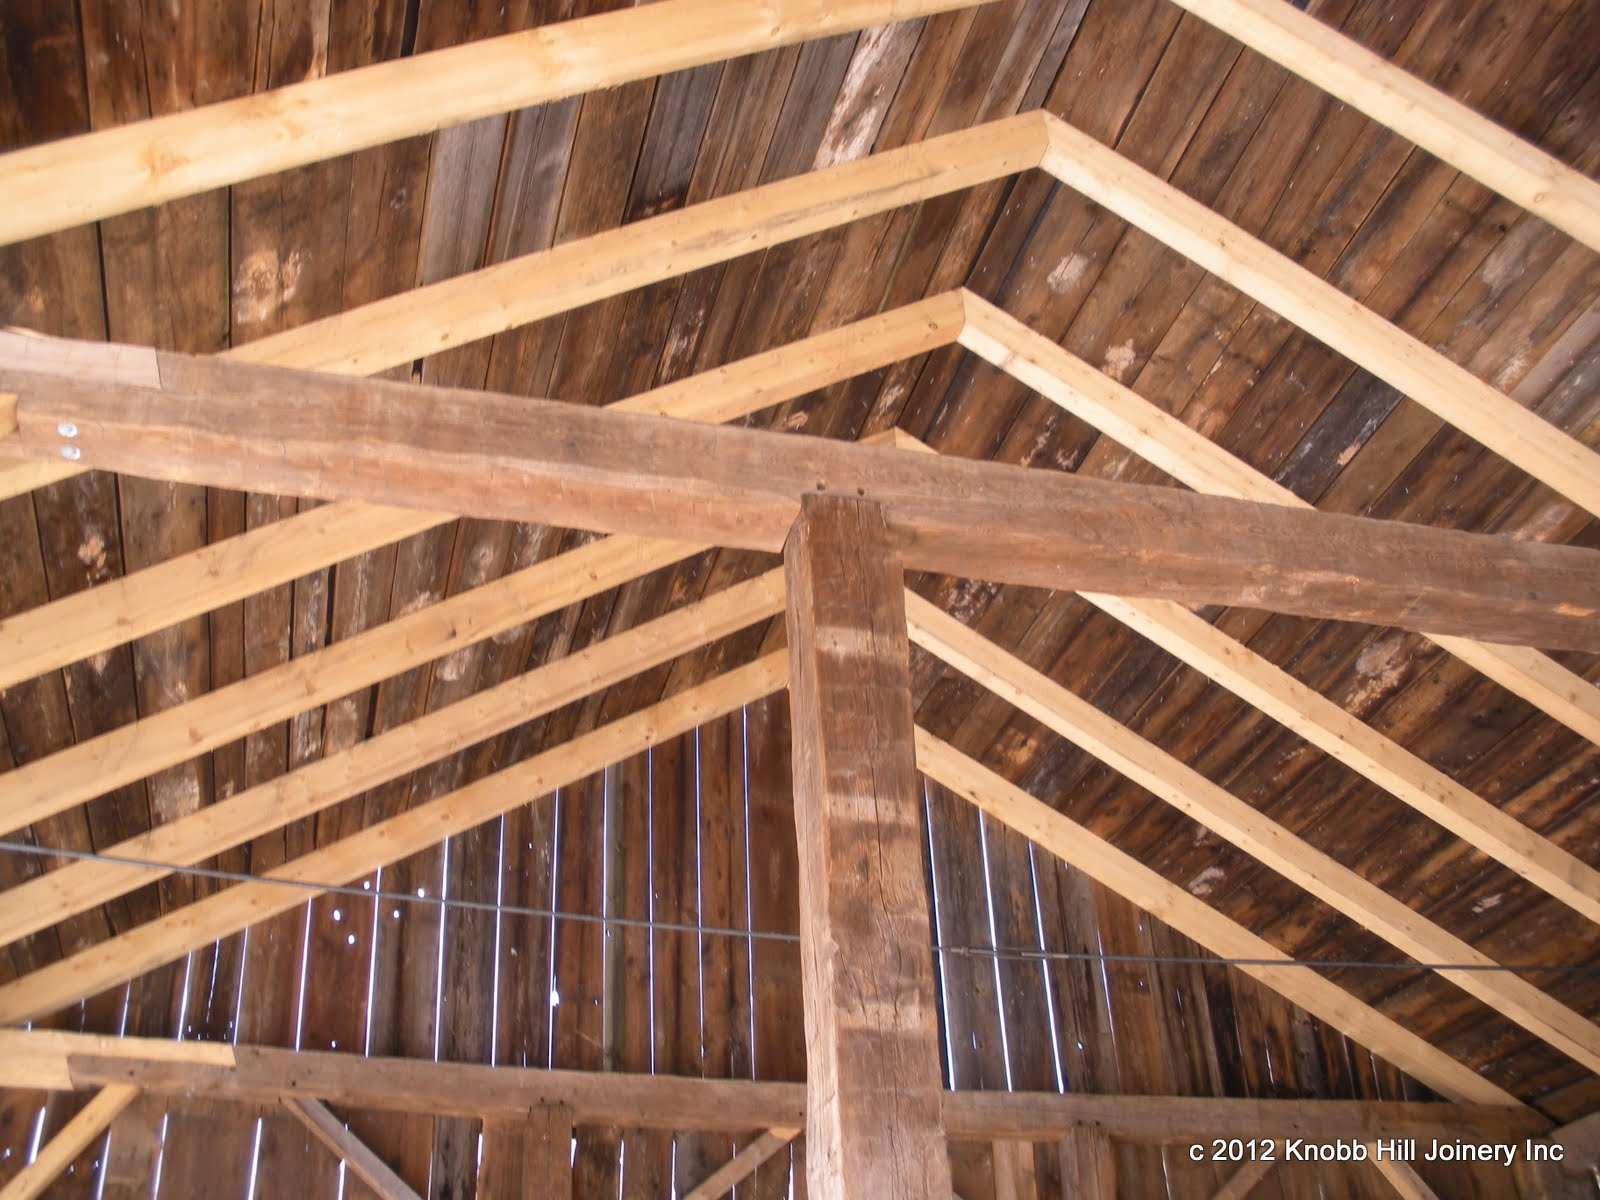 As all of the original rafters had been cut short, we chose to omit the ridge in order to reuse as much of the original rafter stock as possible.  Only 10 of 26 rafters were salvageable.